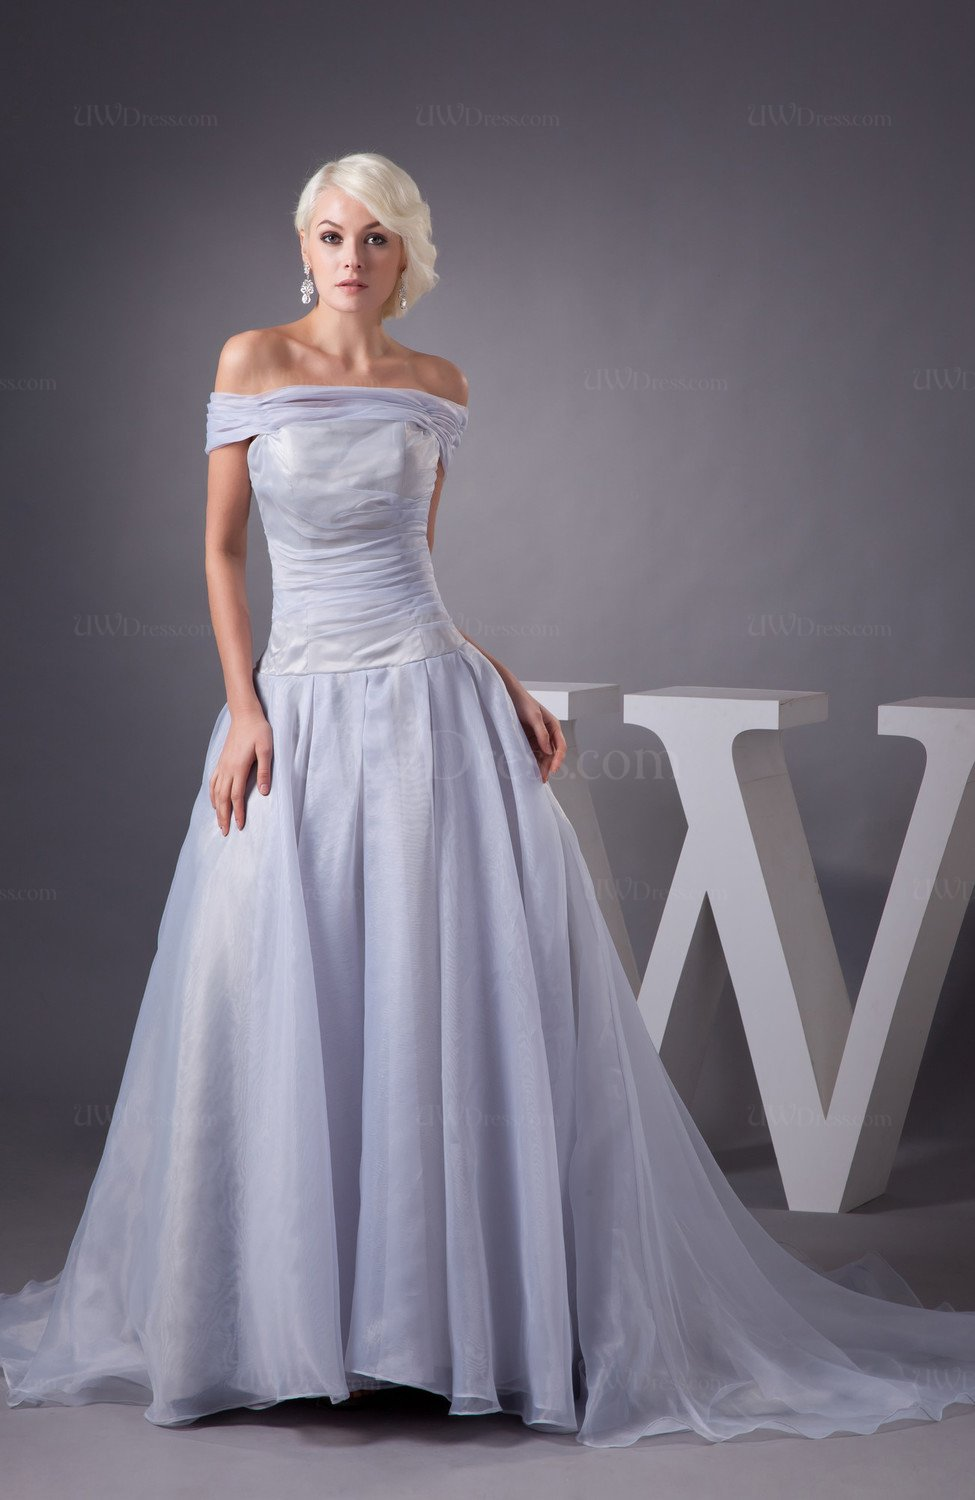 Wisteria Allure Bridal Gowns Sexy Traditional Unique